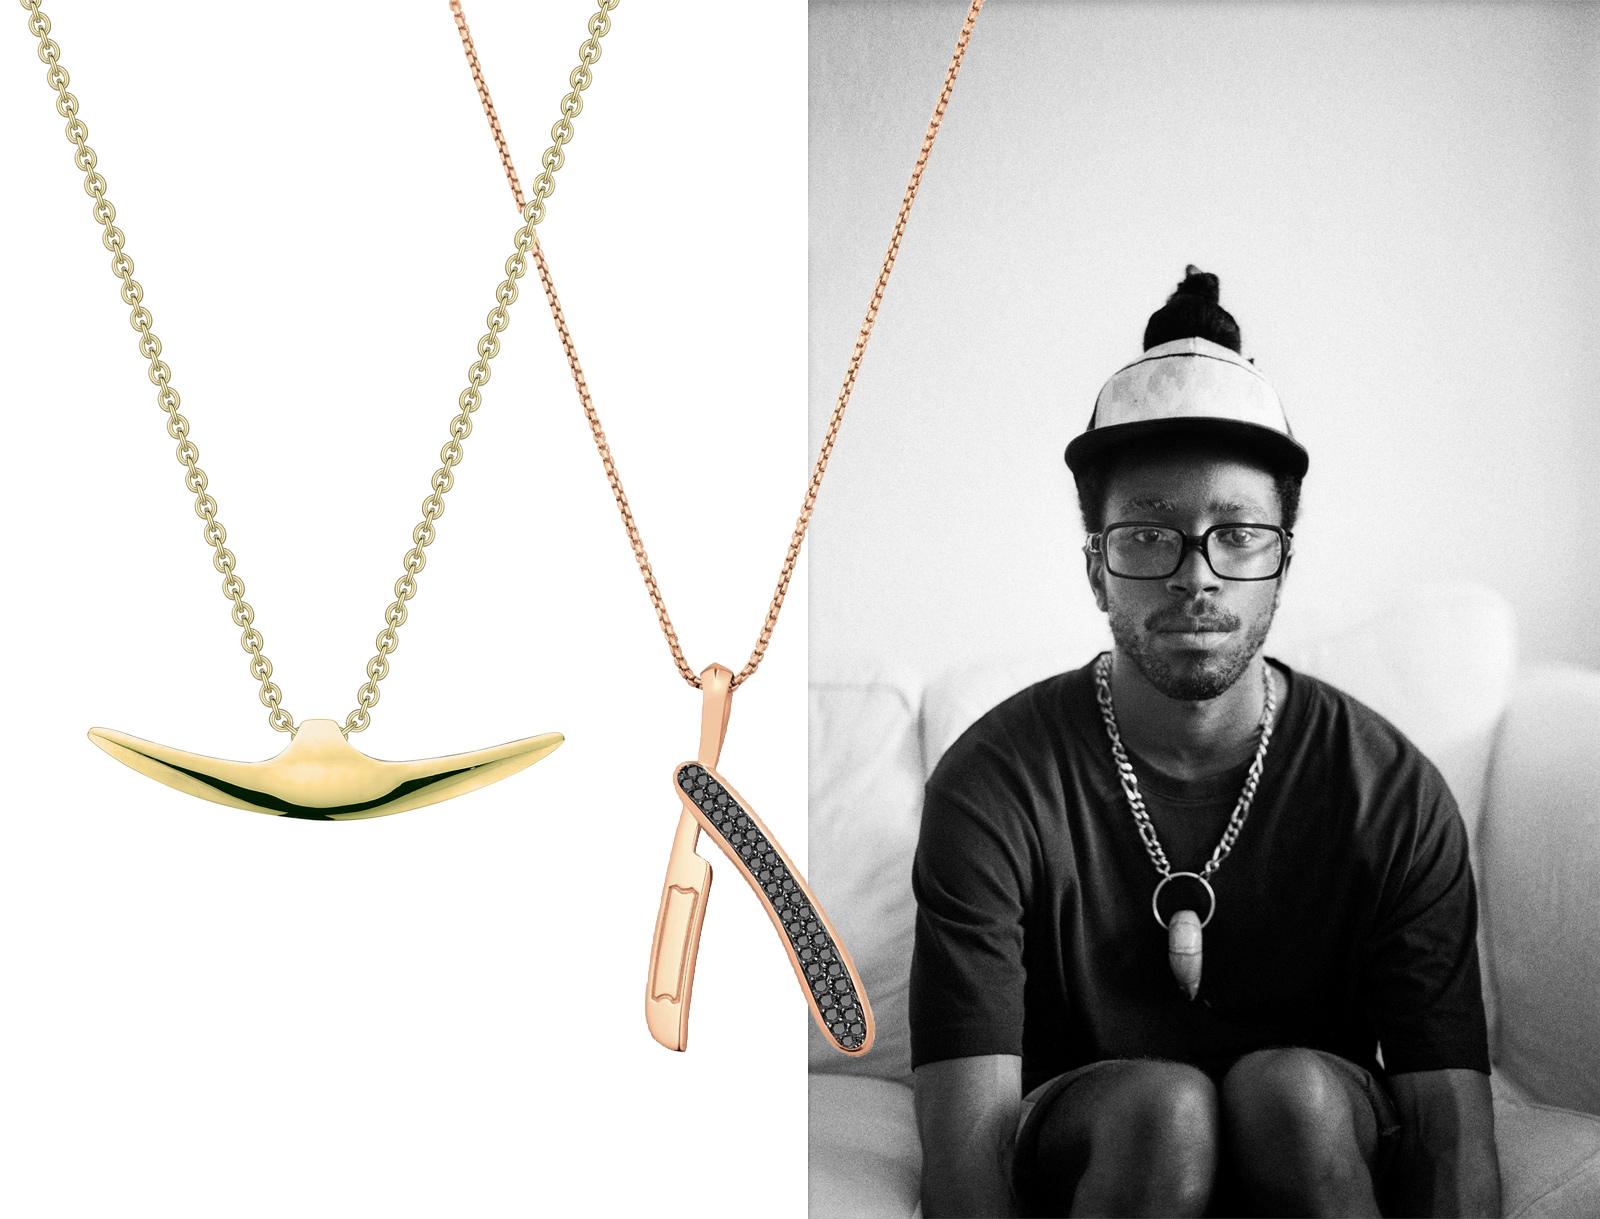 From left to right: Shaun Leane yellow gold necklace and Stephen Webster rose gold Switchblade necklace with black diamonds. Photo on the right by Ross Trevail from the Tomfoolery series